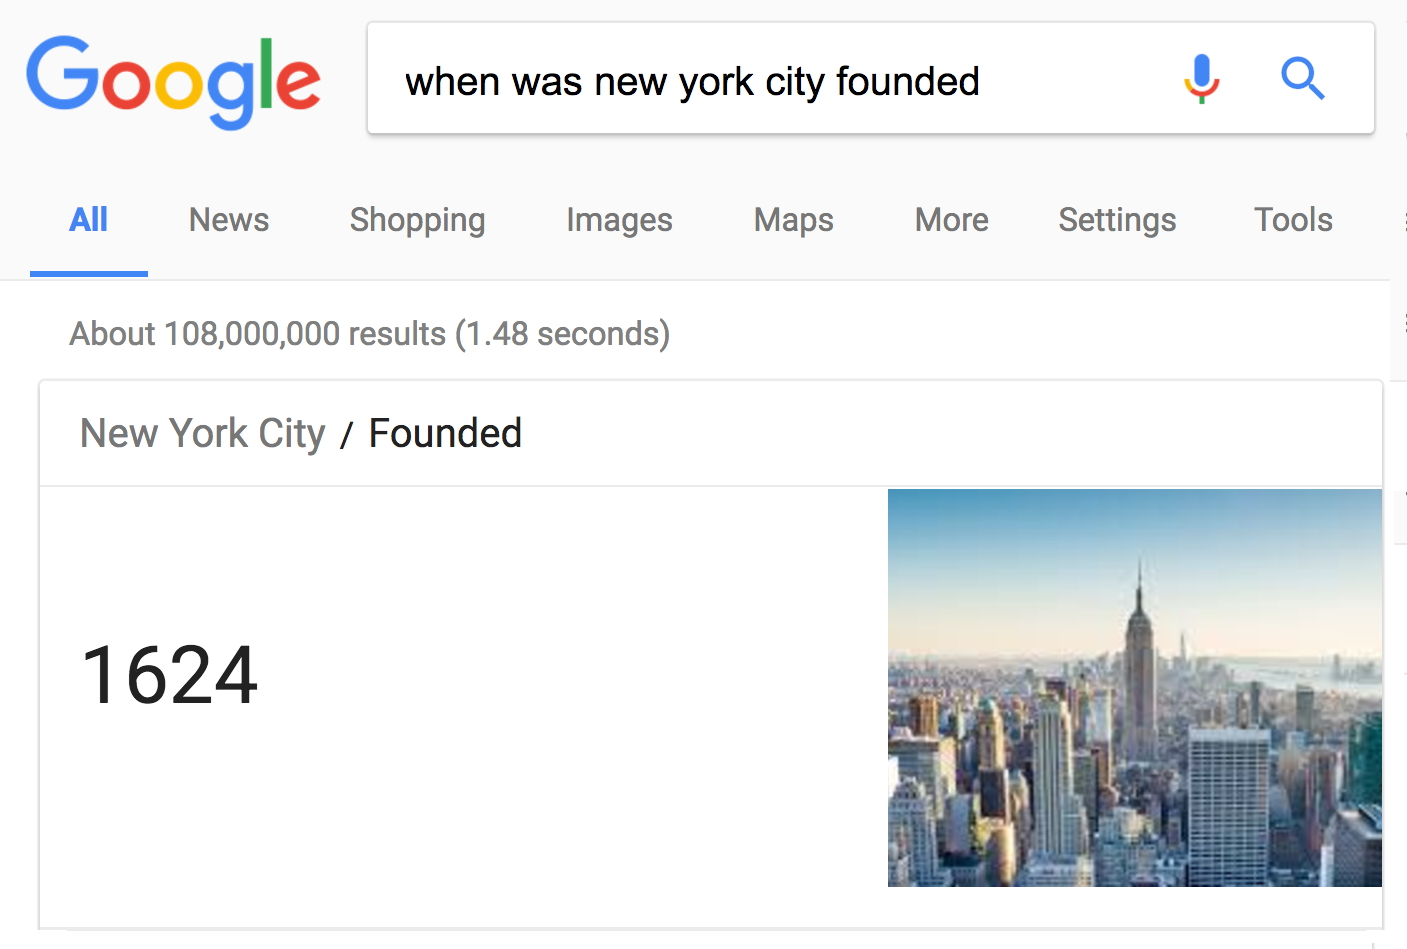 new-york-city-founded-WHEN.jpg